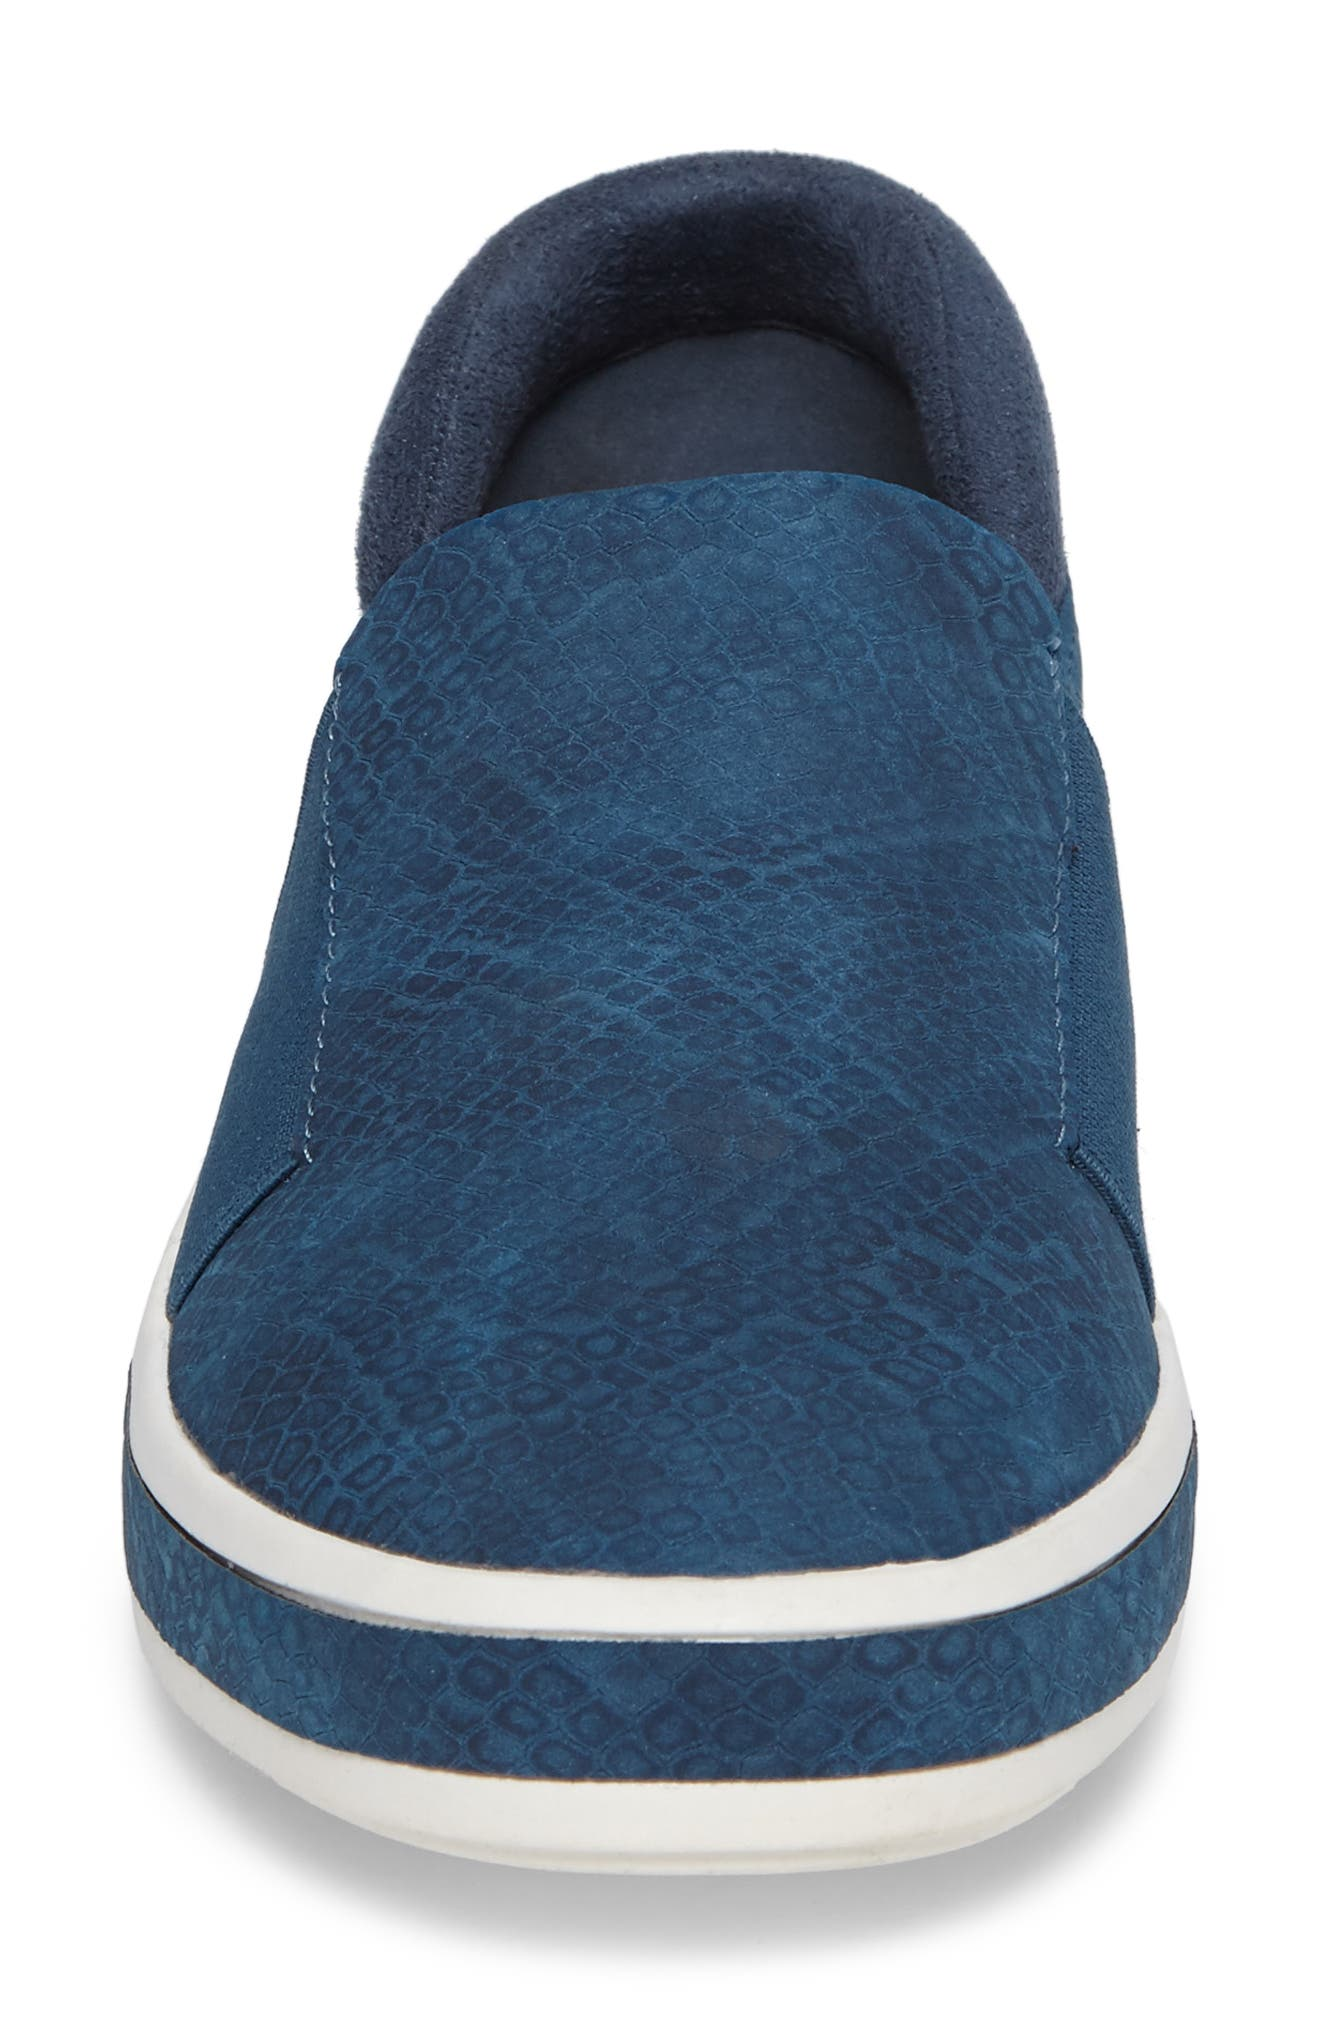 Switch II Slip-On Sneaker,                             Alternate thumbnail 4, color,                             NAVY PRINTED LEATHER